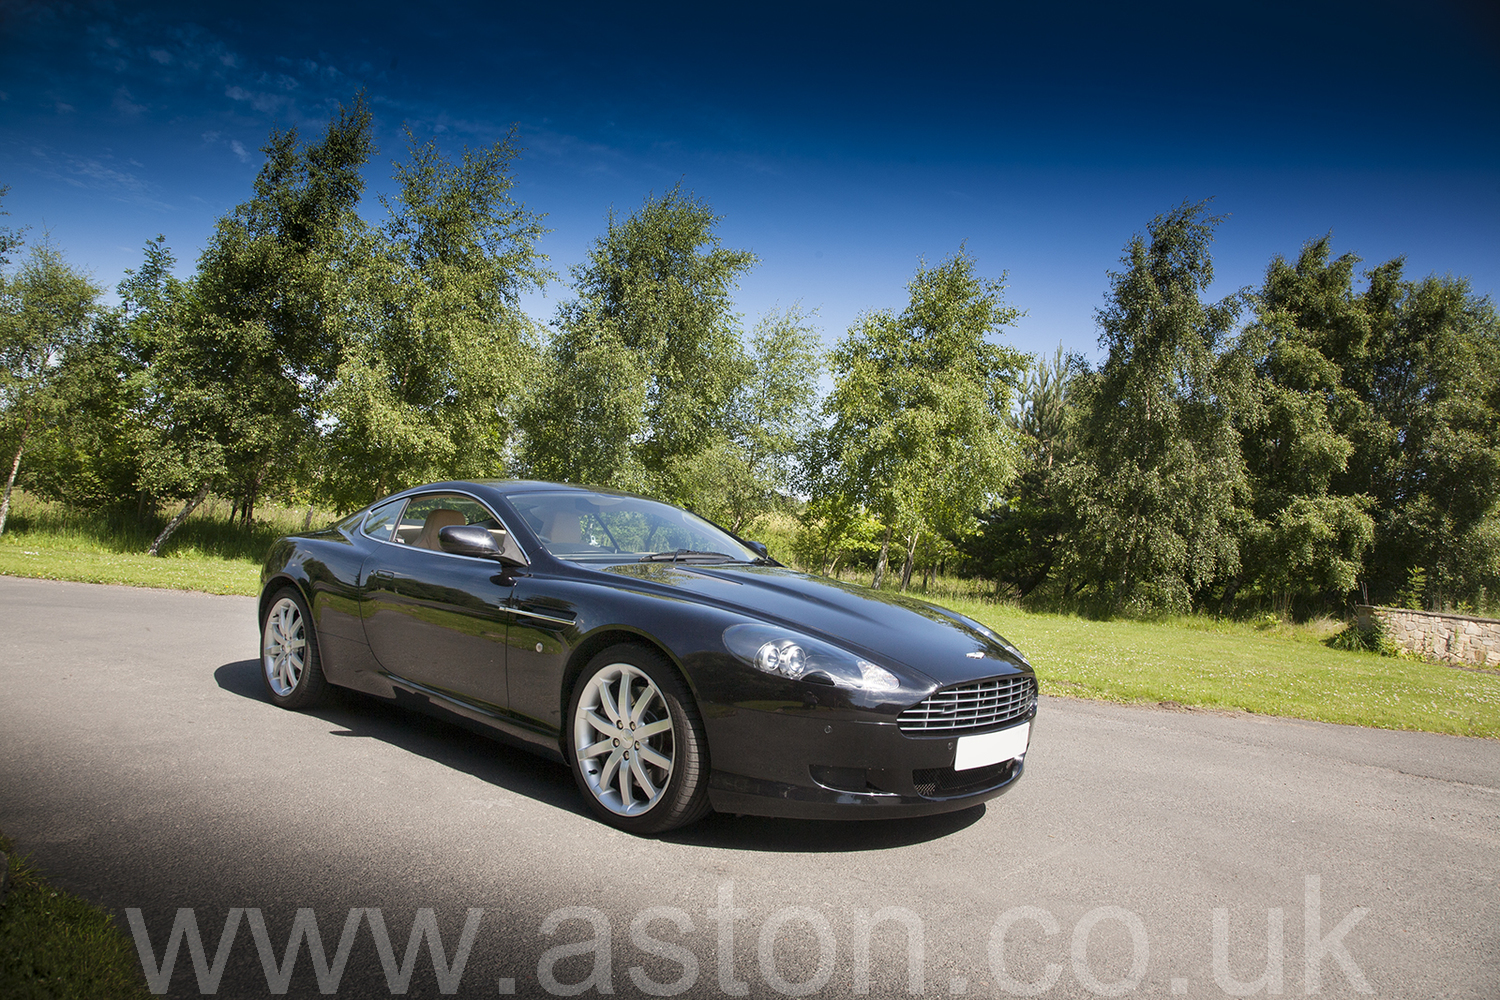 Aston Martin DB For Sale From Aston Workshop - Aston martin db9 for sale